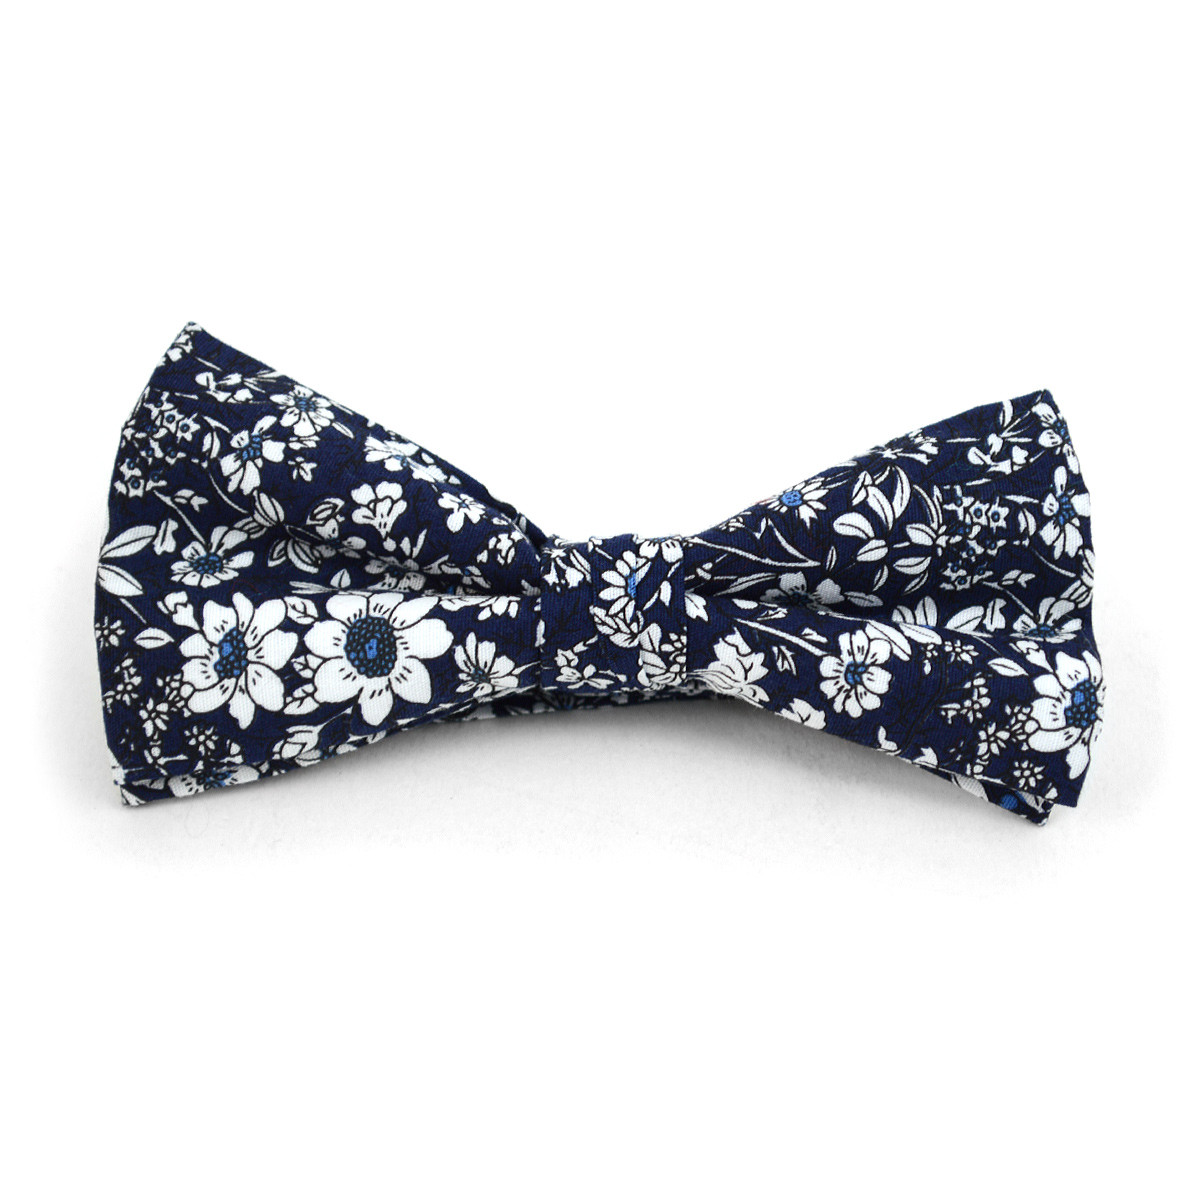 3pc Floral Wedding Cotton Banded Bow Tie - NFCB17137